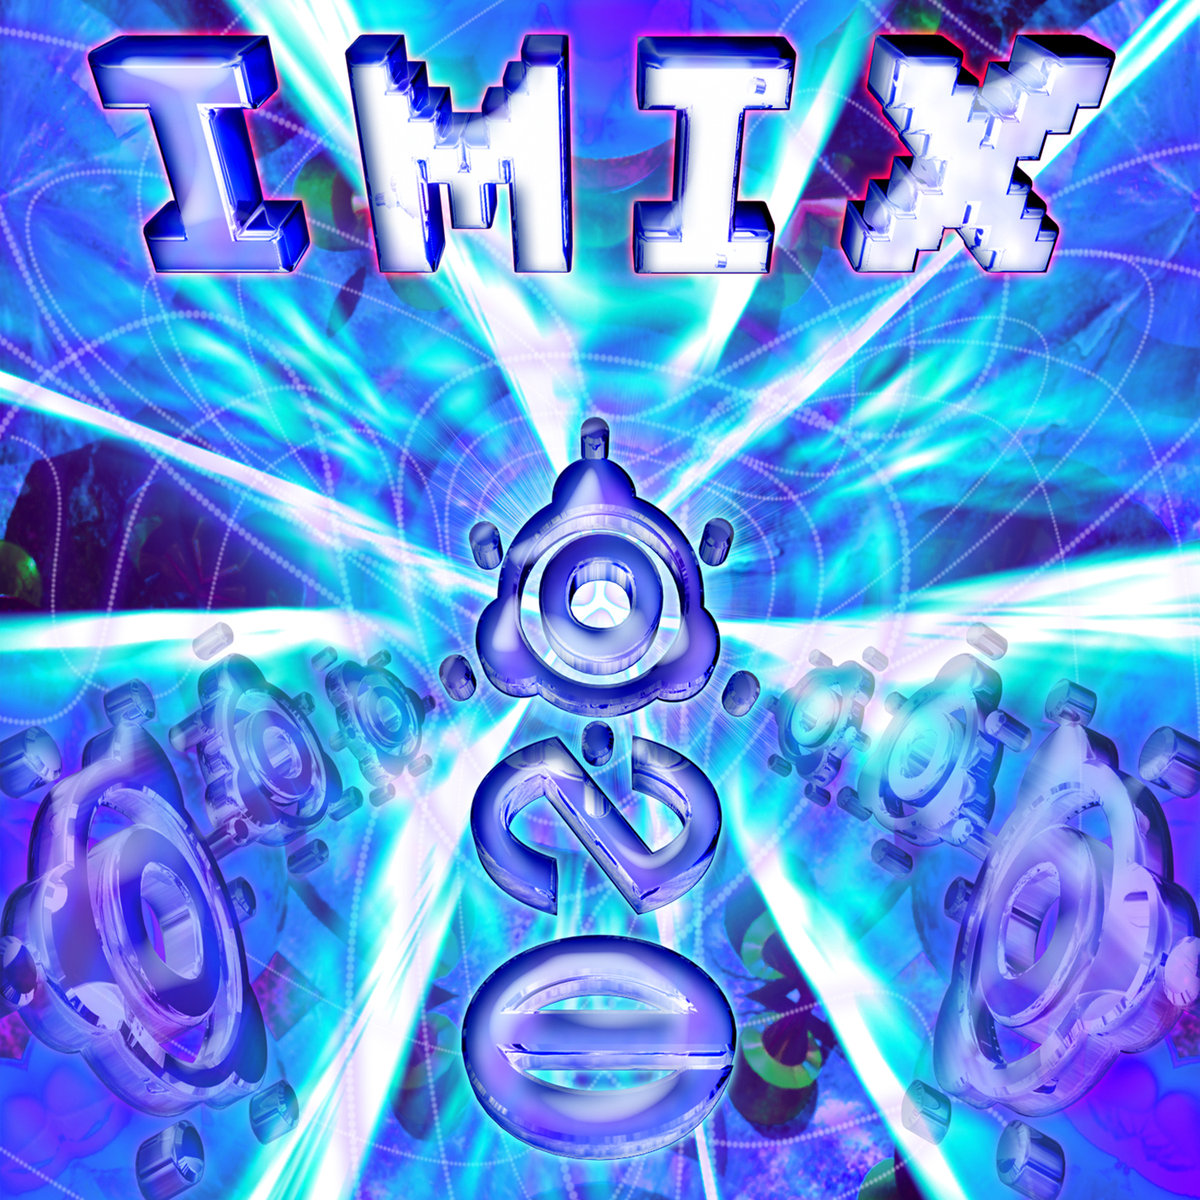 Imix - One @ 'One' album (electronic, geomagnetic)